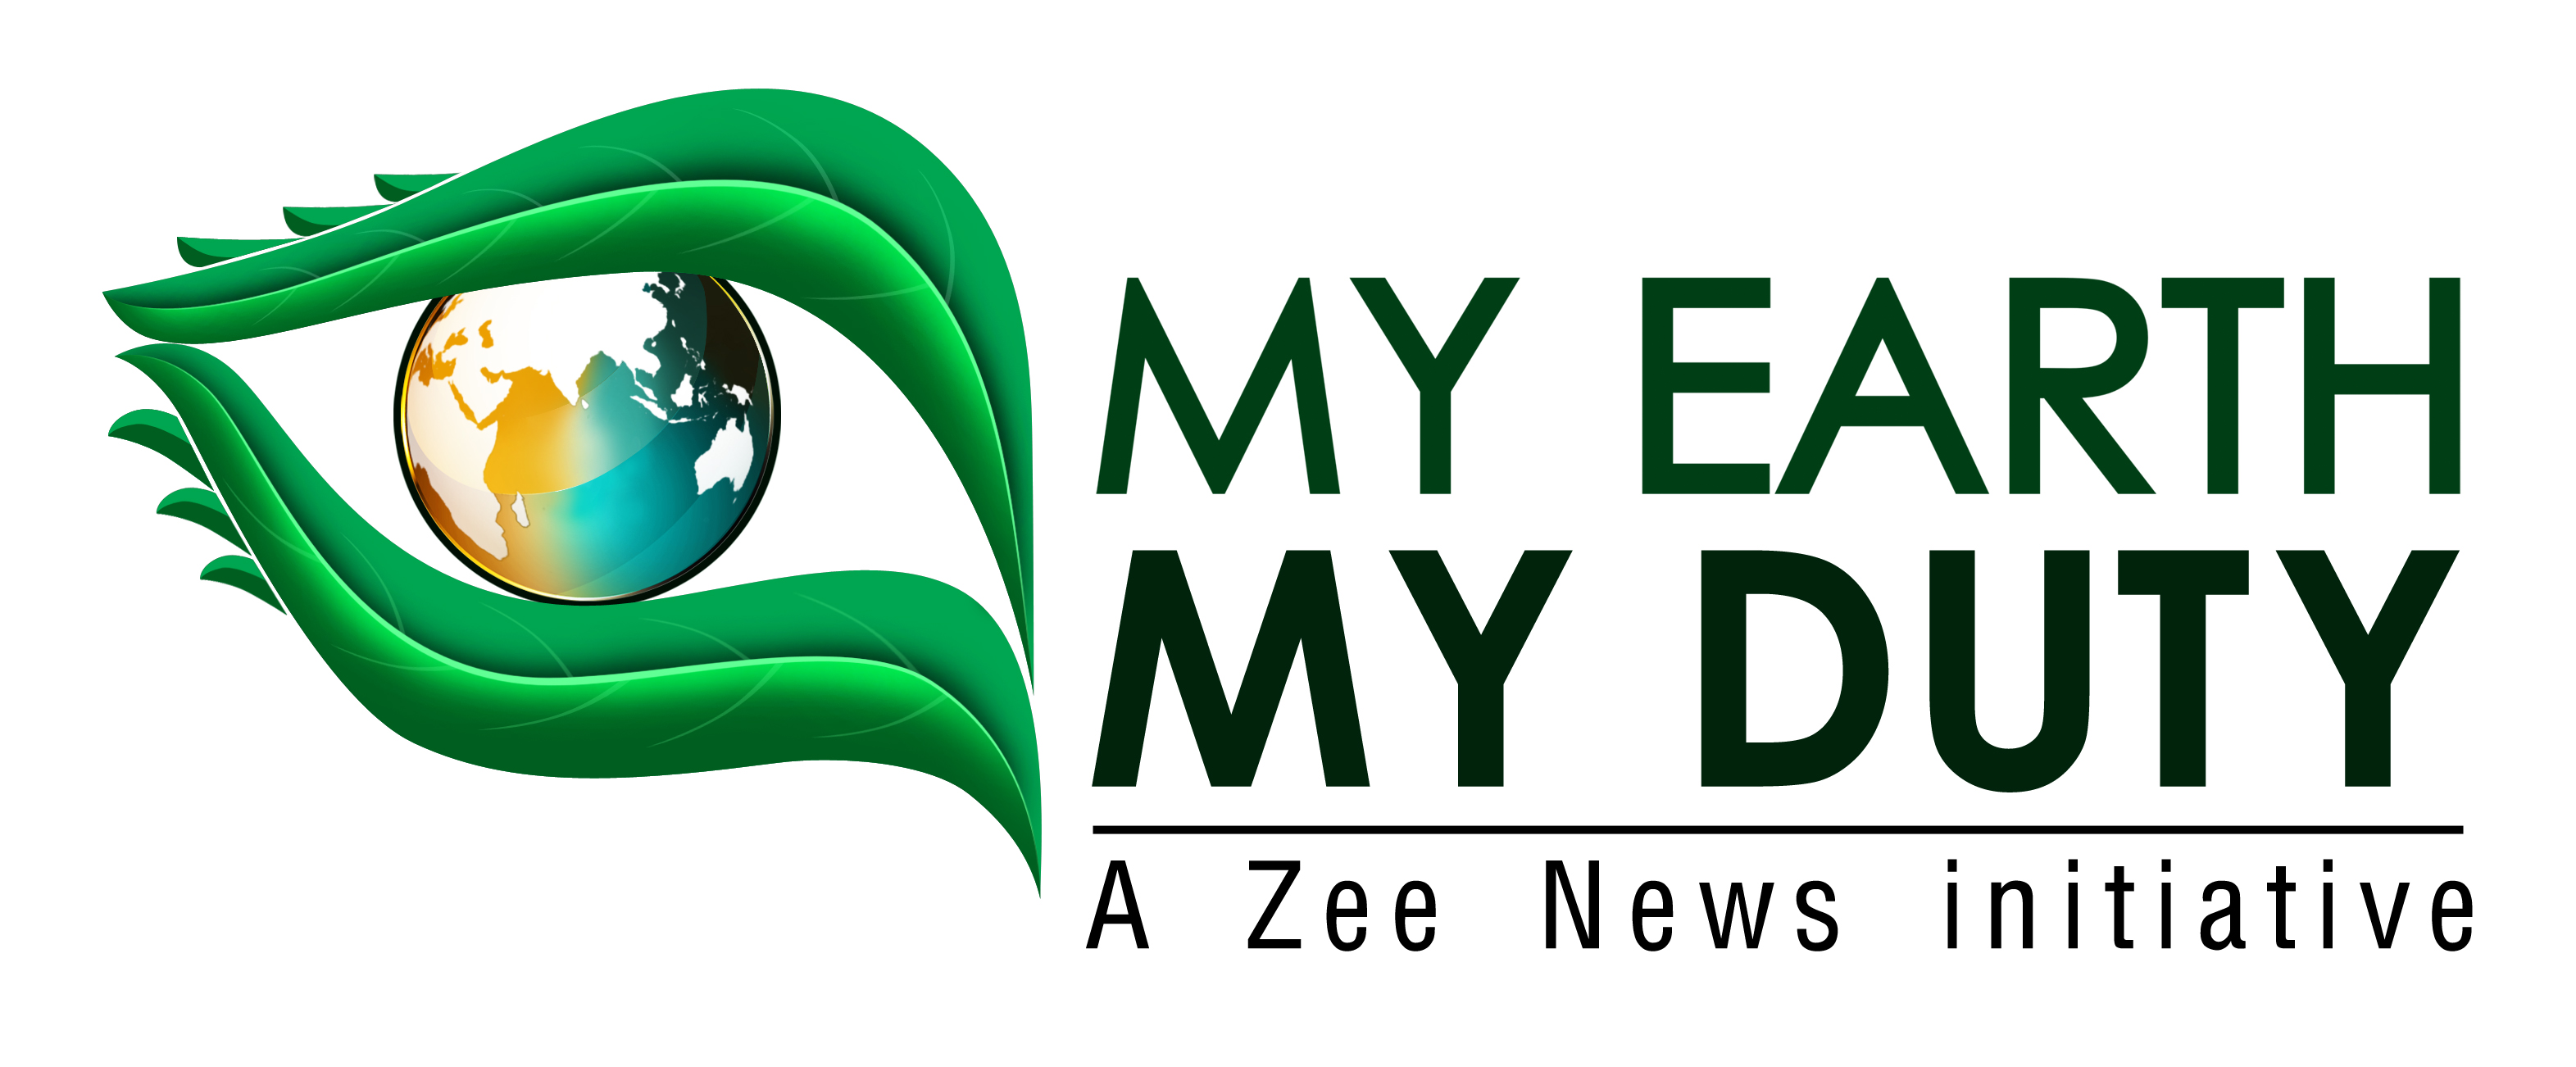 Zee News launches My Earth My Duty